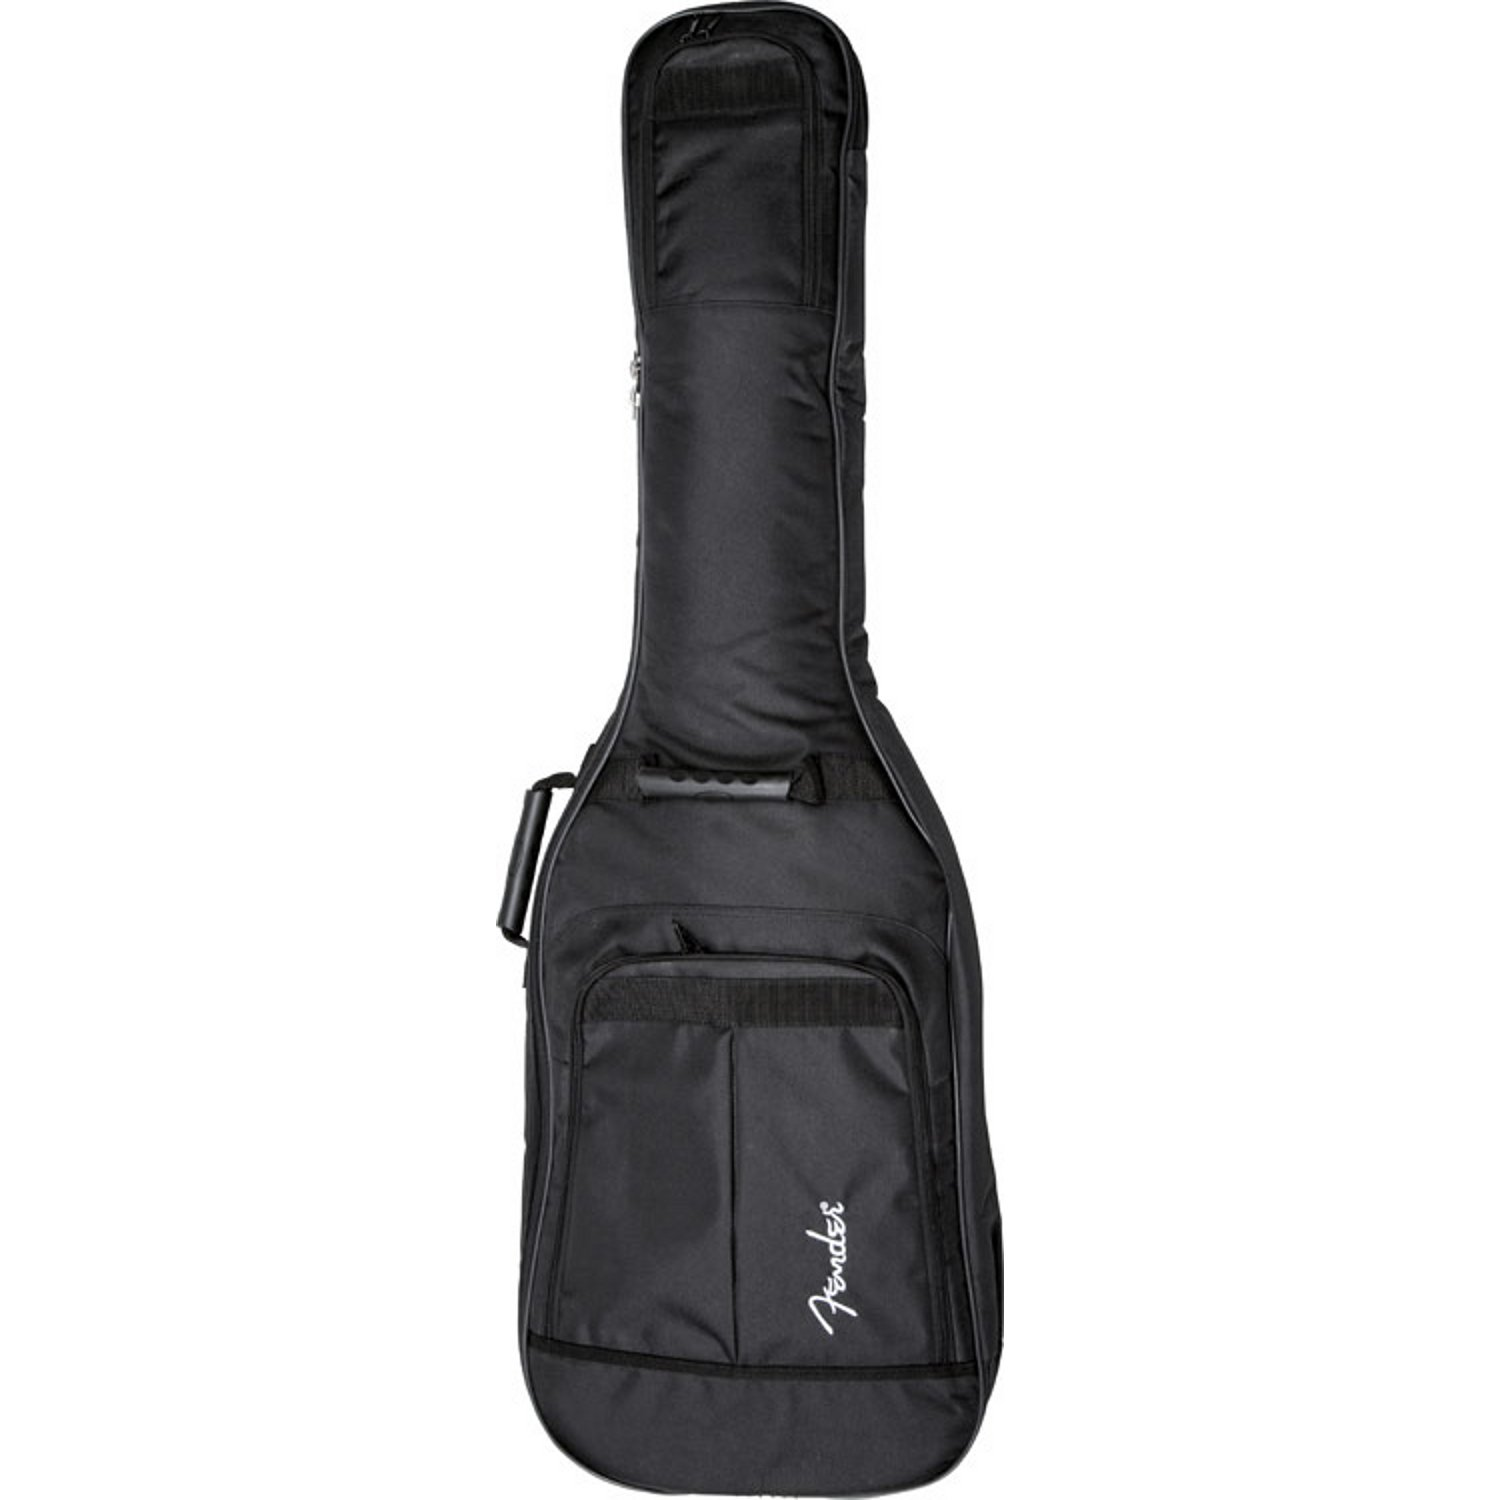 fender metro gig bag housse pour guitare basse lectrique. Black Bedroom Furniture Sets. Home Design Ideas